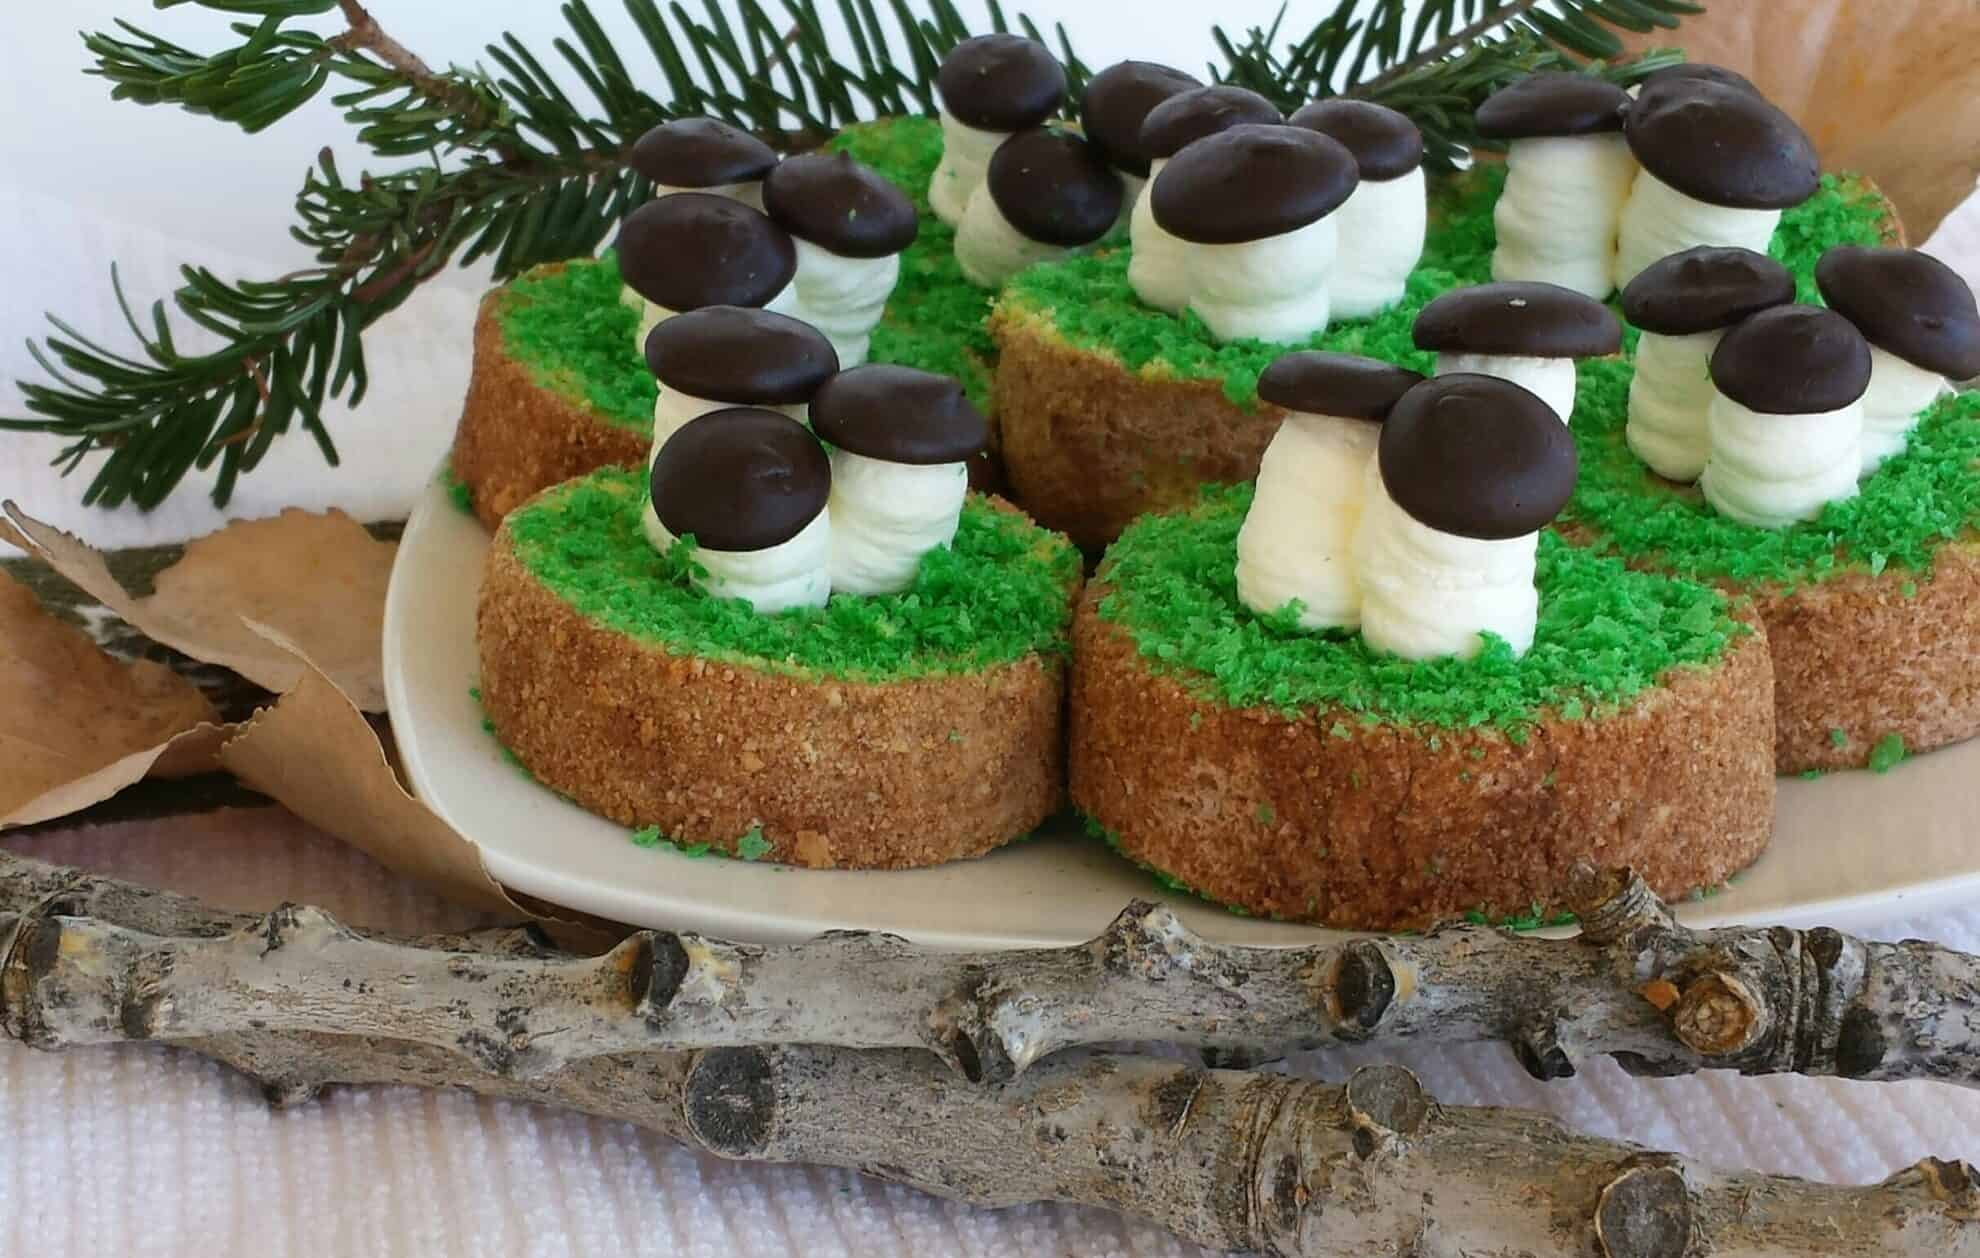 Isn't it a mushroom season now? These decorative desserts are mushrooms growing on top of an old stump in the forest. That chocolate cream inside the roll, the white cream of the mushroom stem and chocolate mushroom head make the taste unforgettable and crave-able. #oldstumpdessert #fallbaking #beautifuldessert